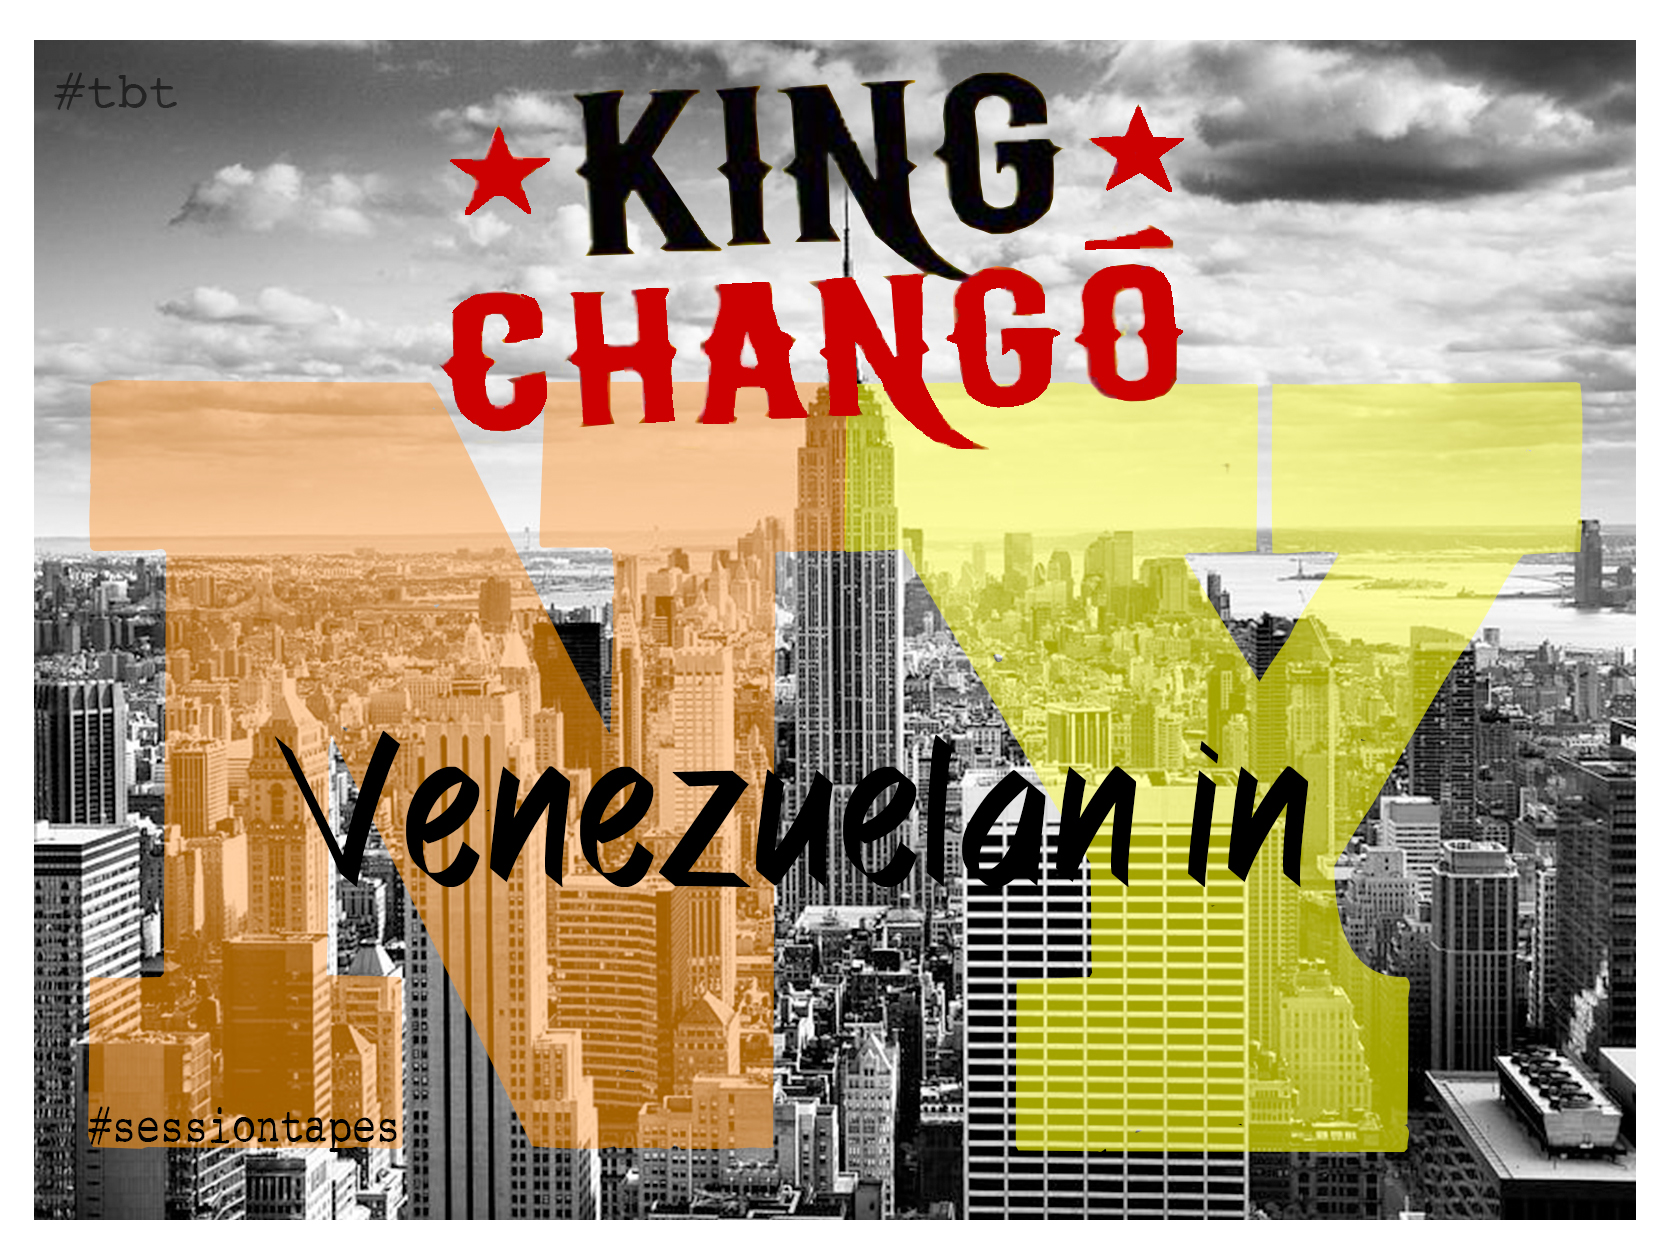 King Chango – Venezuelan in New York #TBT